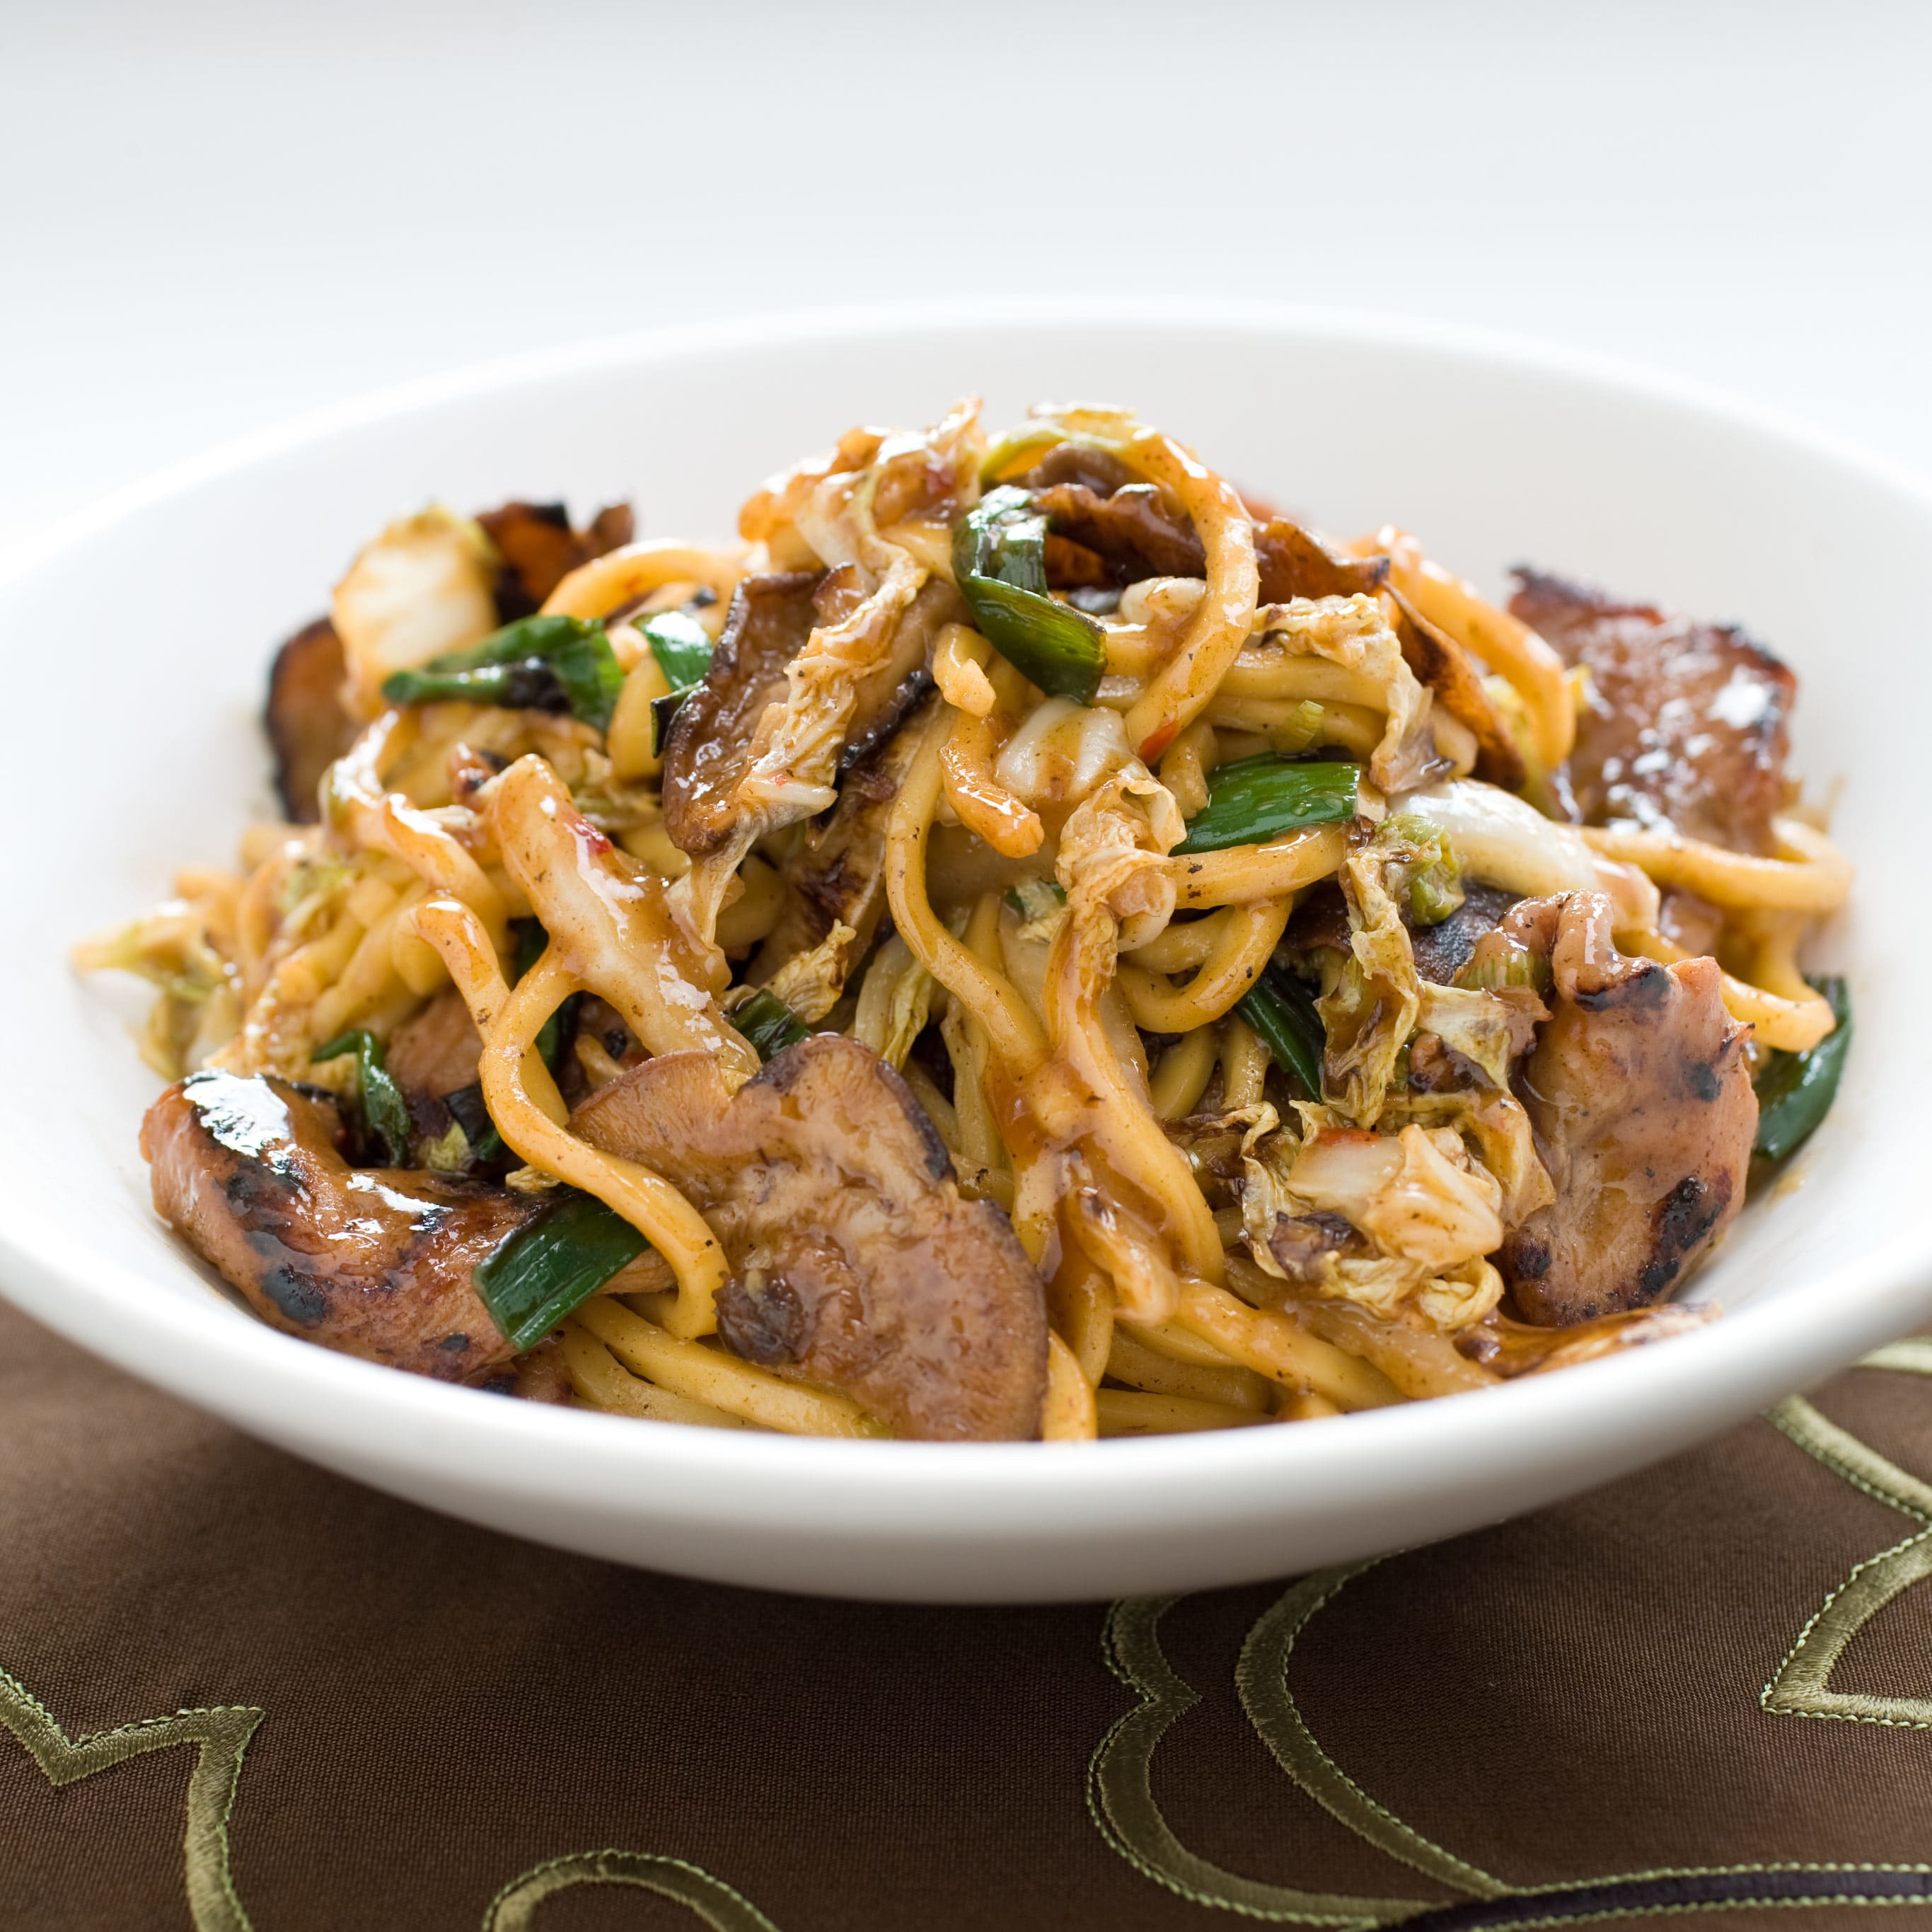 Pork Stir-Fry with Noodles (Lo Mein)